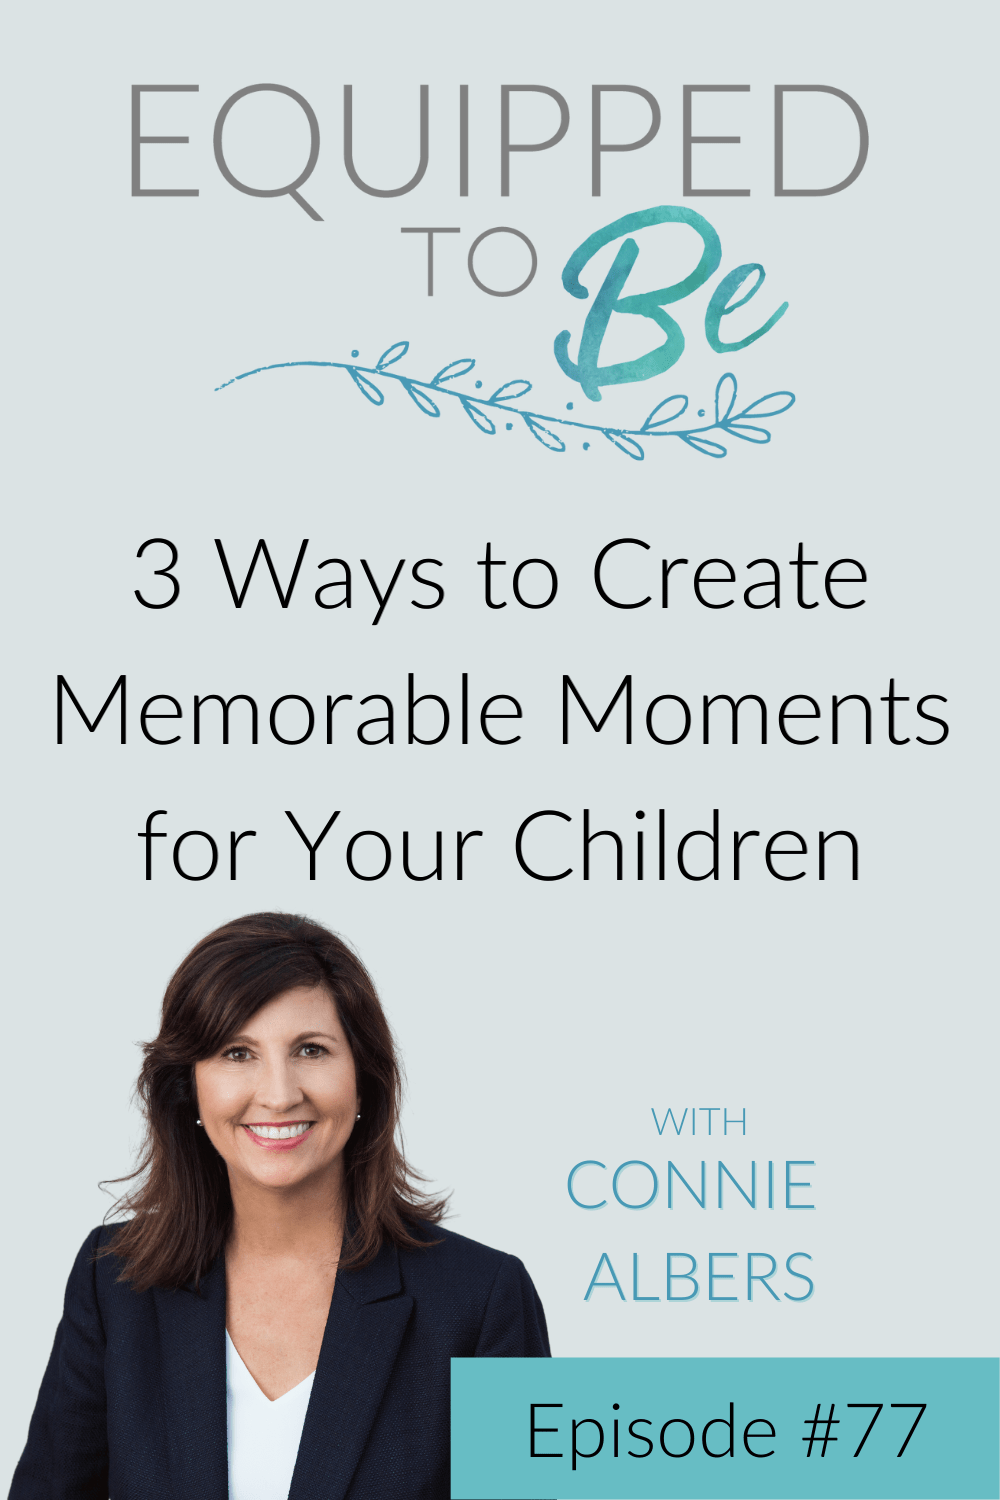 3 Ways to Create Memorable Moments for Your Children - ETB #77